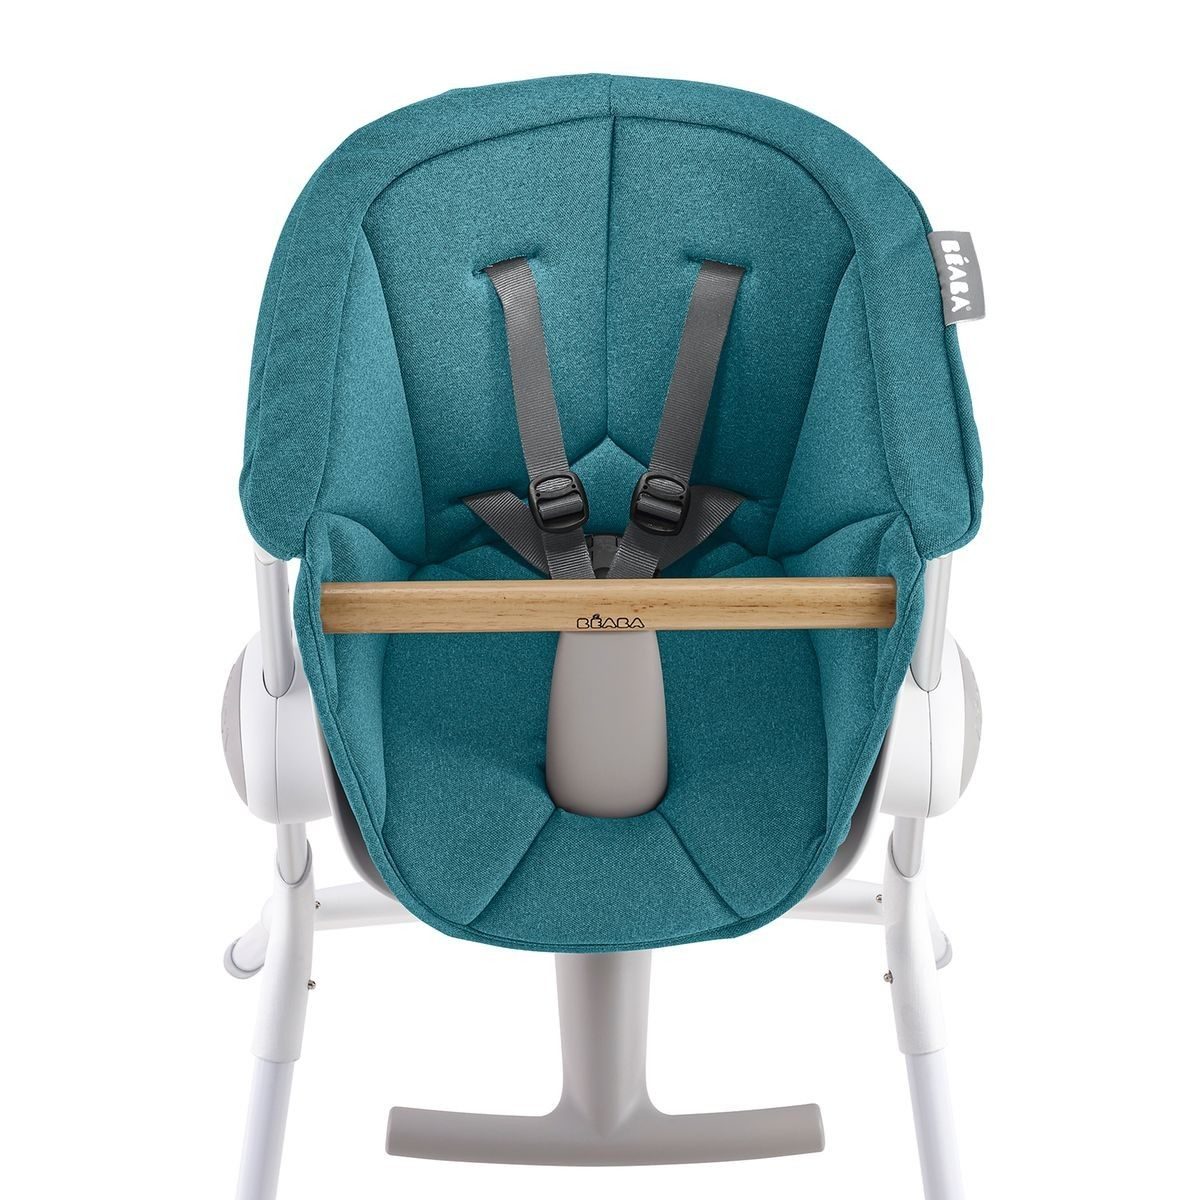 Assise Chaise Haute Up And Down Chaise Coussin Chaise Et Chaise Enfant